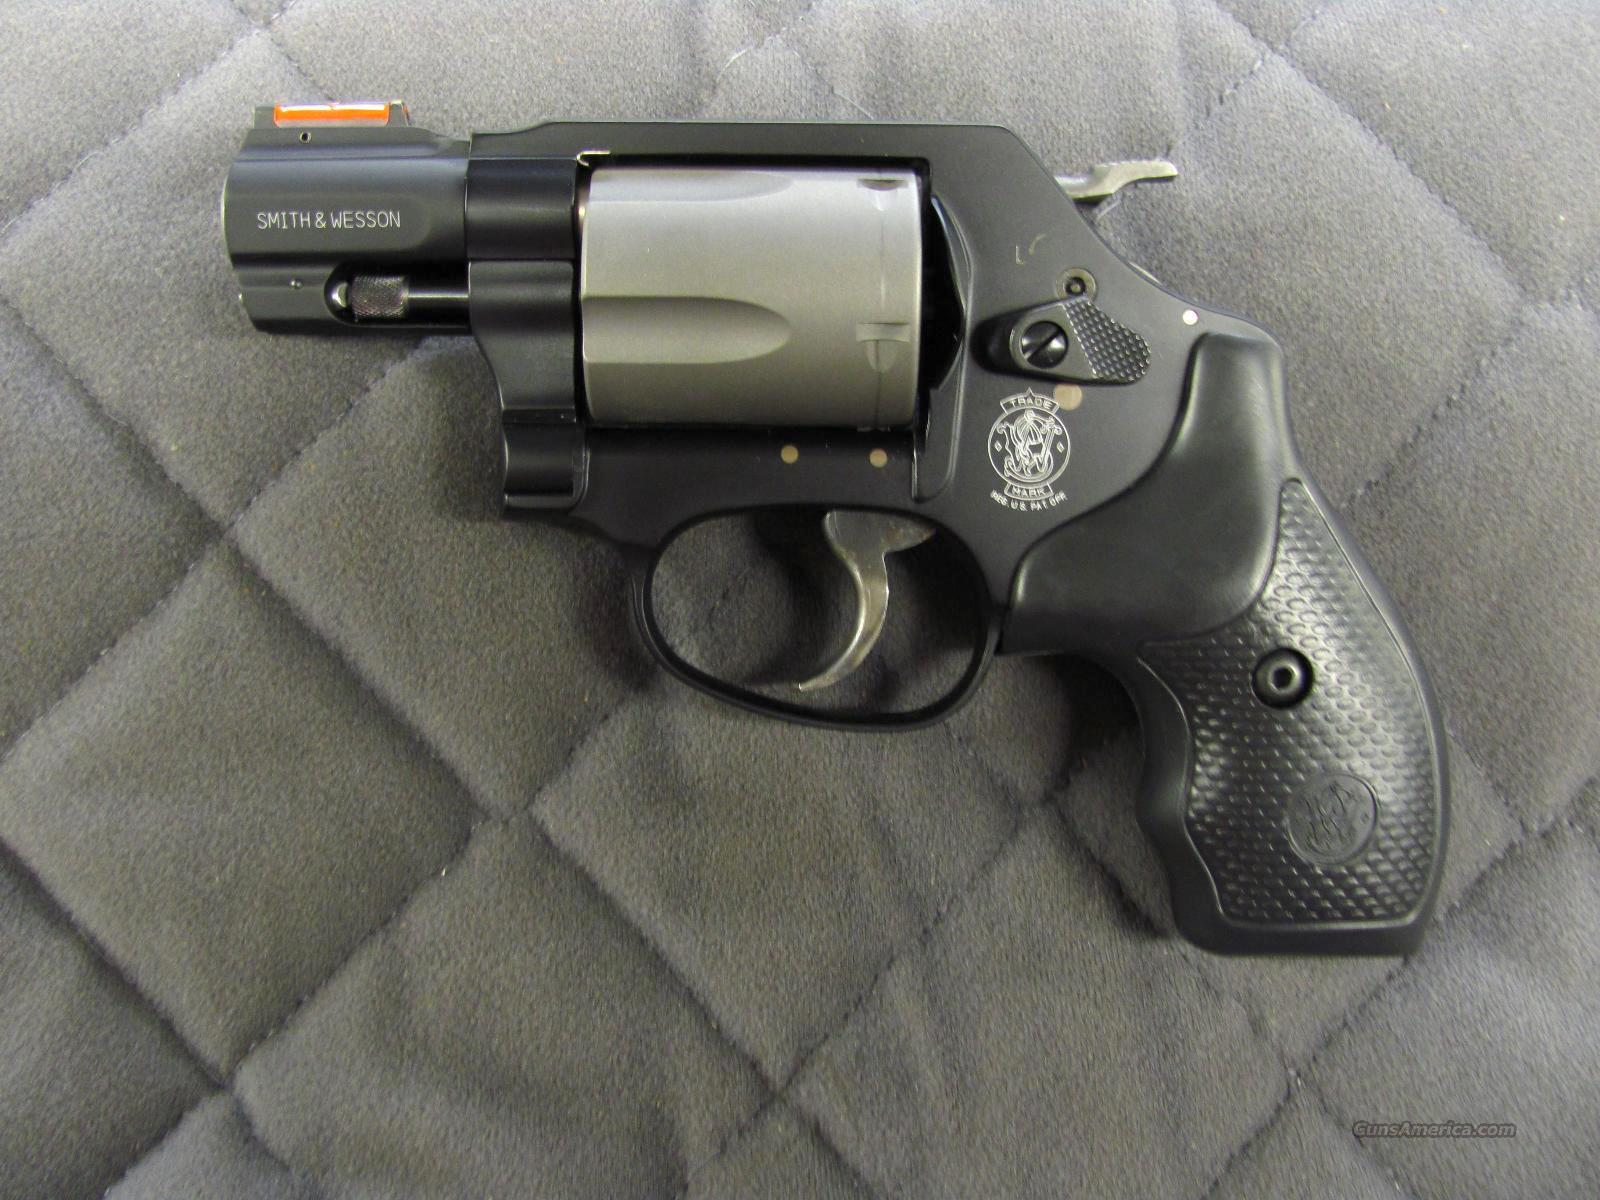 Smith & Wesson Model 360 PD 357 magnum  **NEW**  Guns > Pistols > Smith & Wesson Revolvers > Pocket Pistols